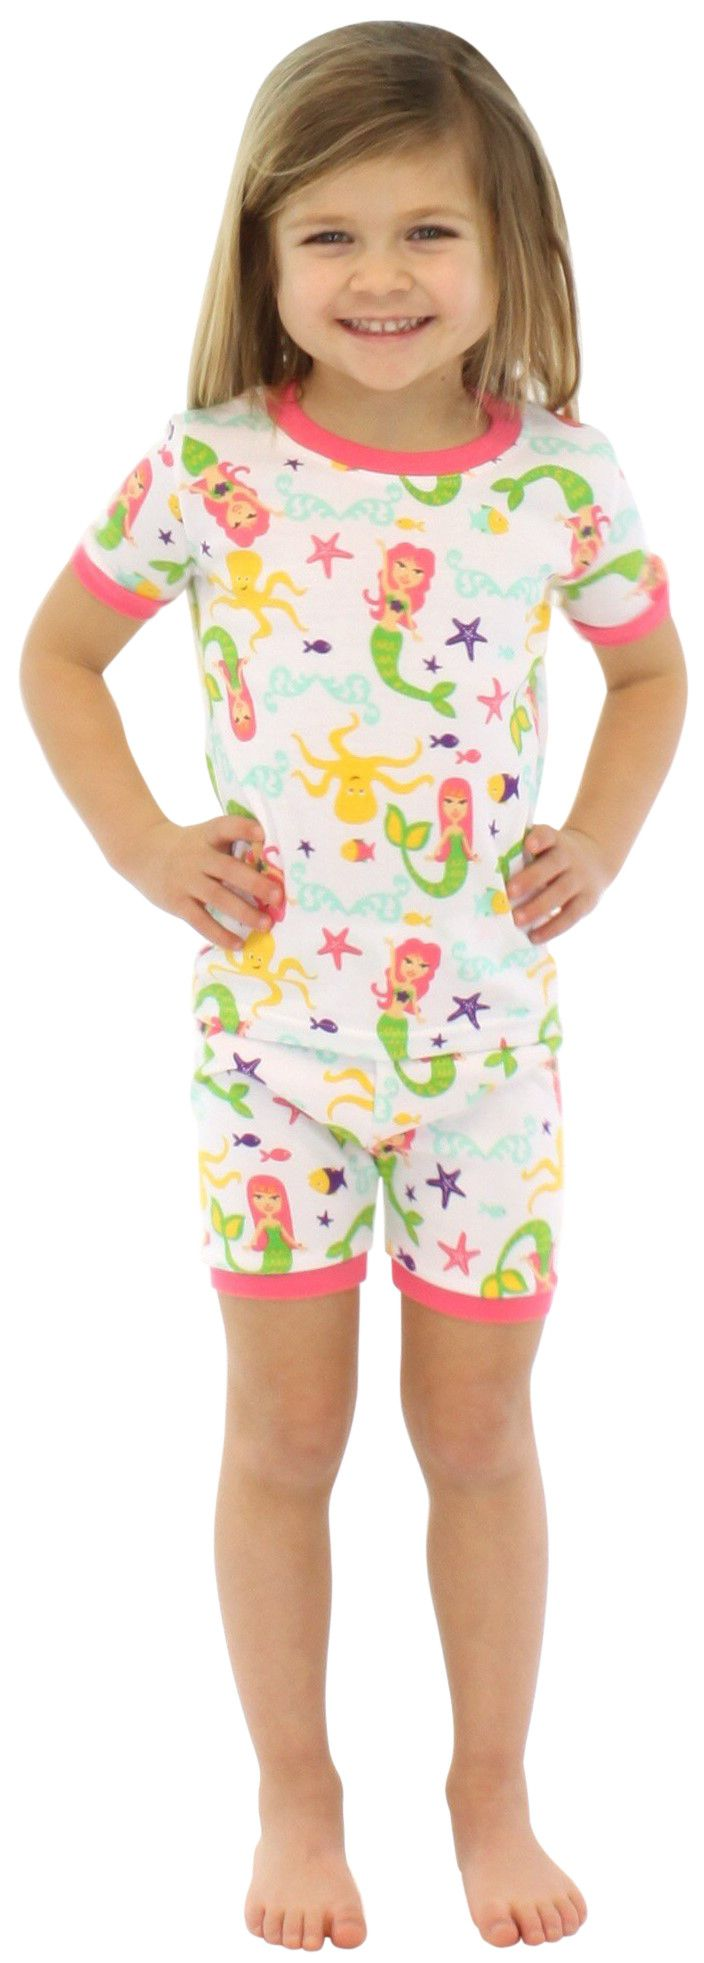 SleepytimePjs Kids Shorts & Tee Pajama Set